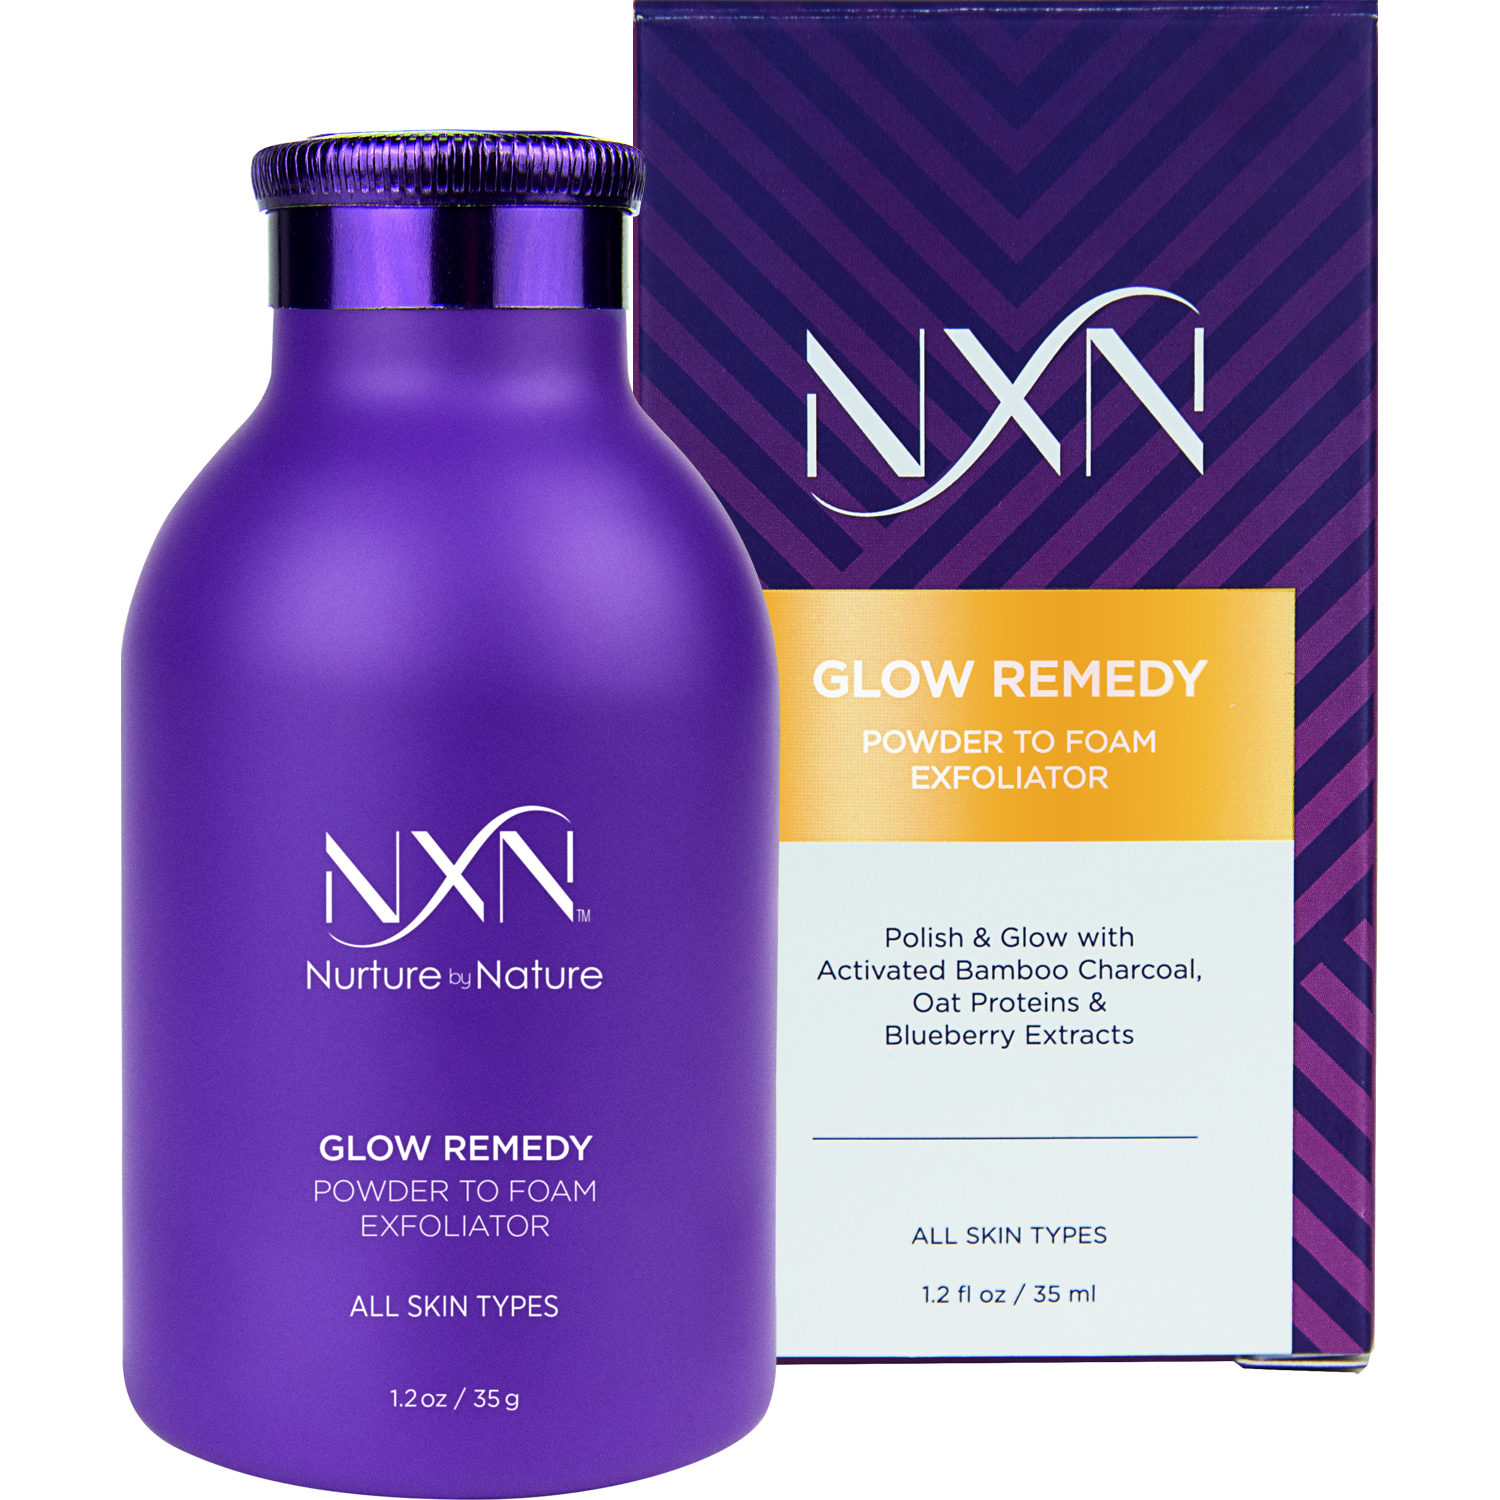 GLOW REMEDY POWDER TO FOAM EXFOLIATOR